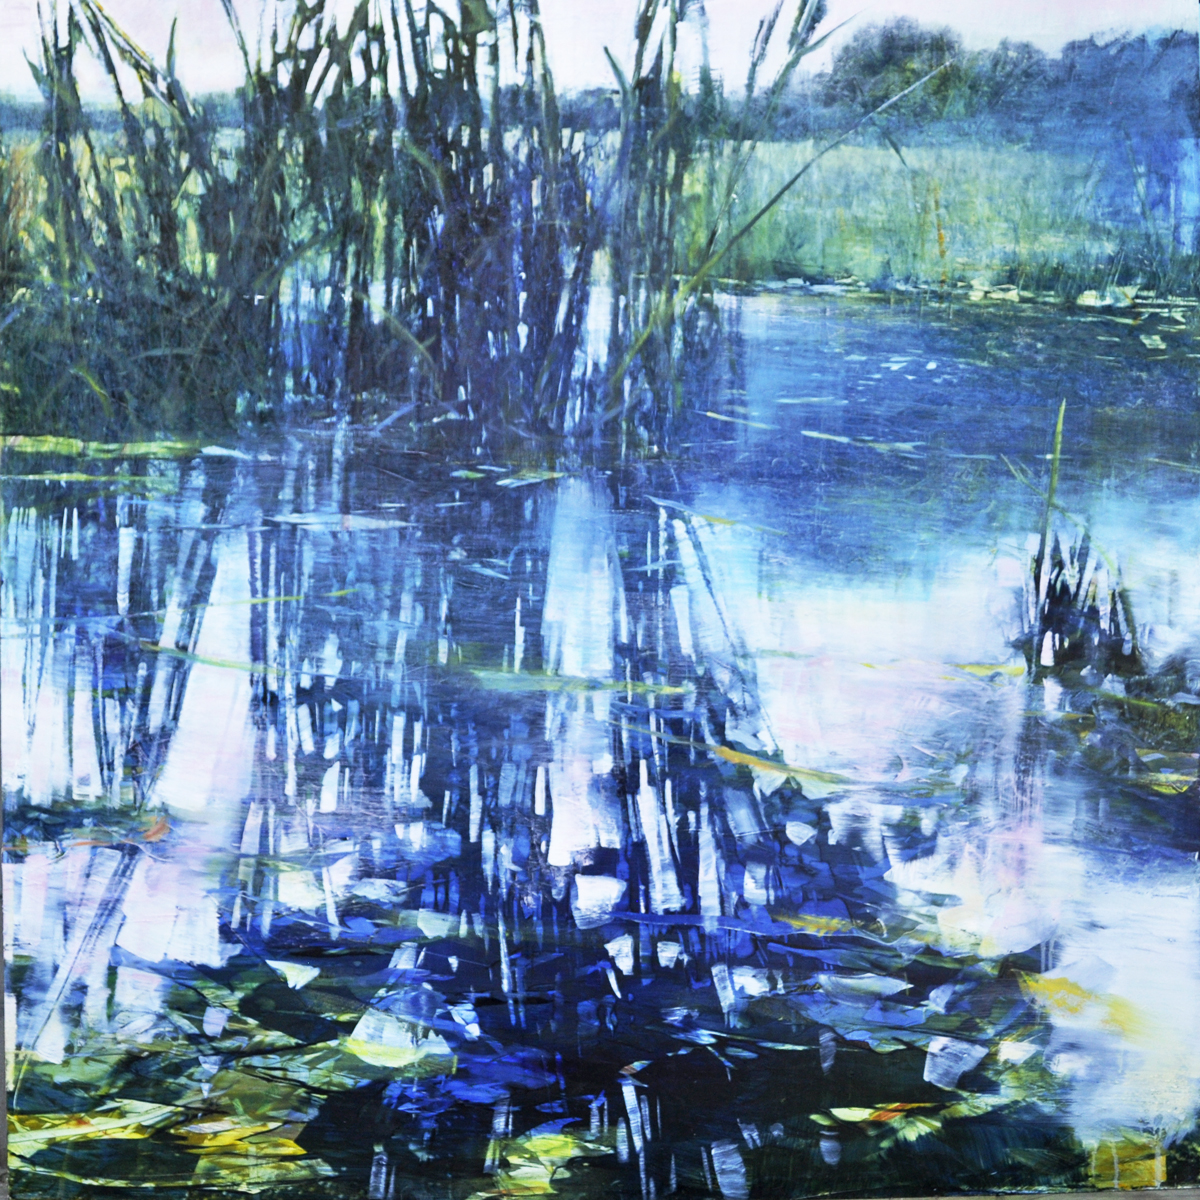 """Blue Reeds, Grasses"", oil on anodized aluminum, 48x48"